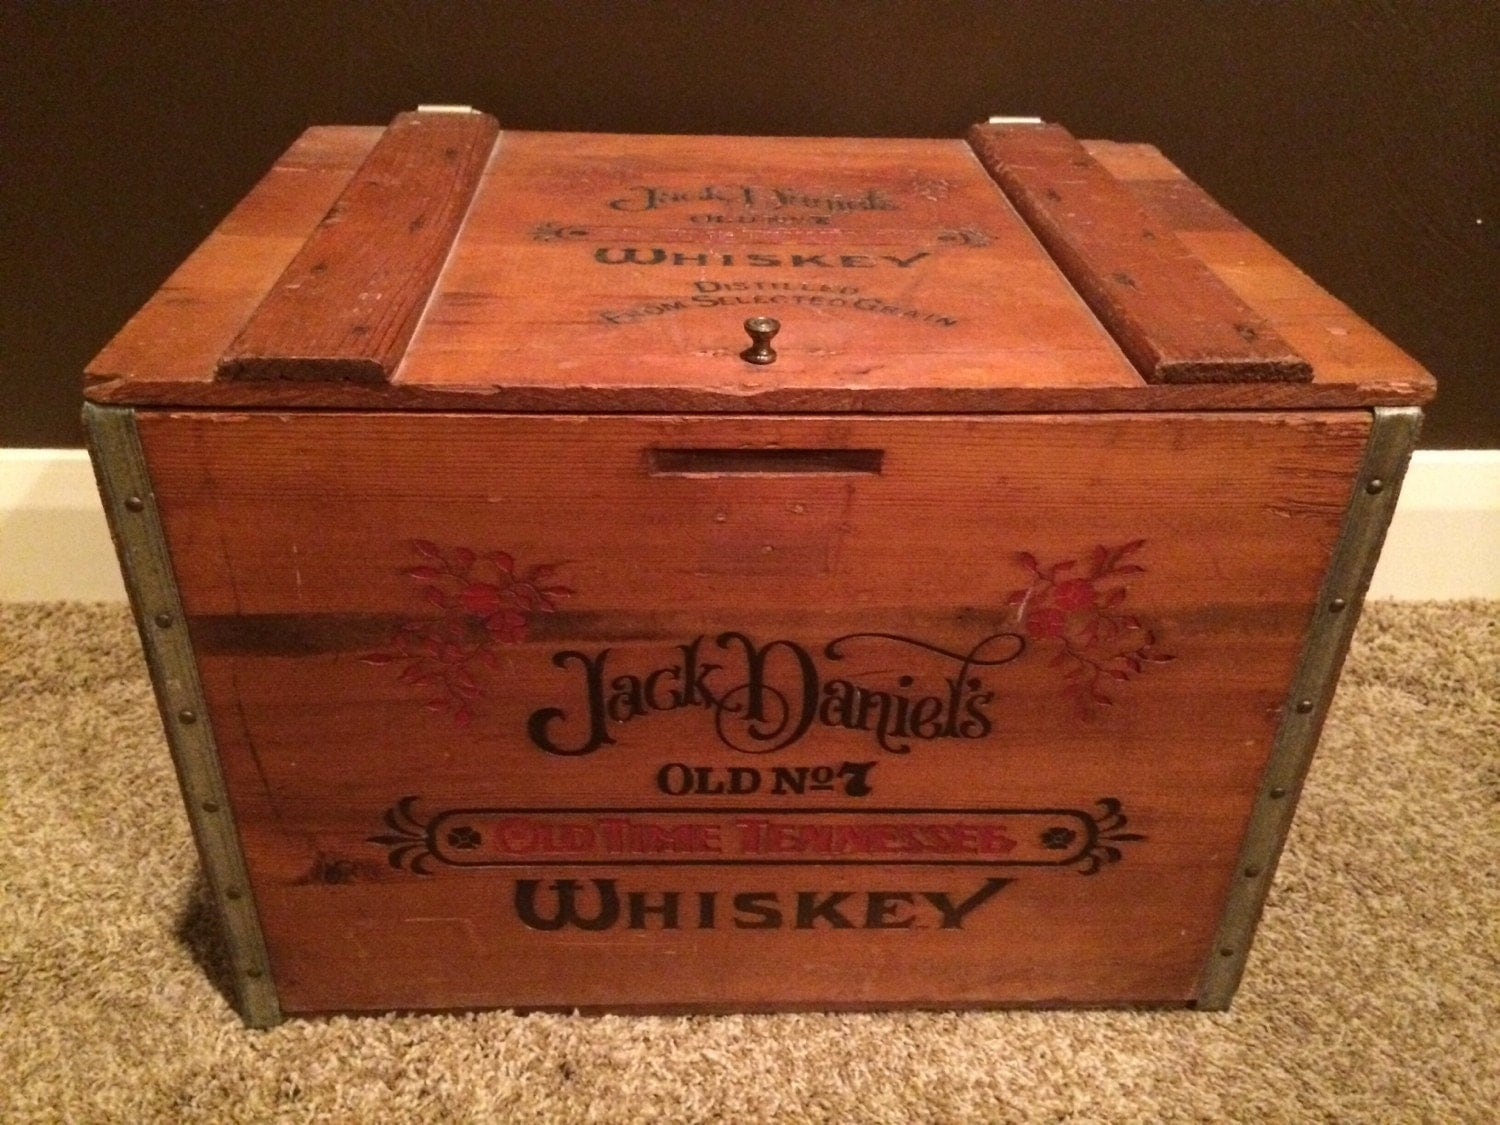 Jack daniels wood box wooden crates vintage antique whiskey for Where to find old wooden crates